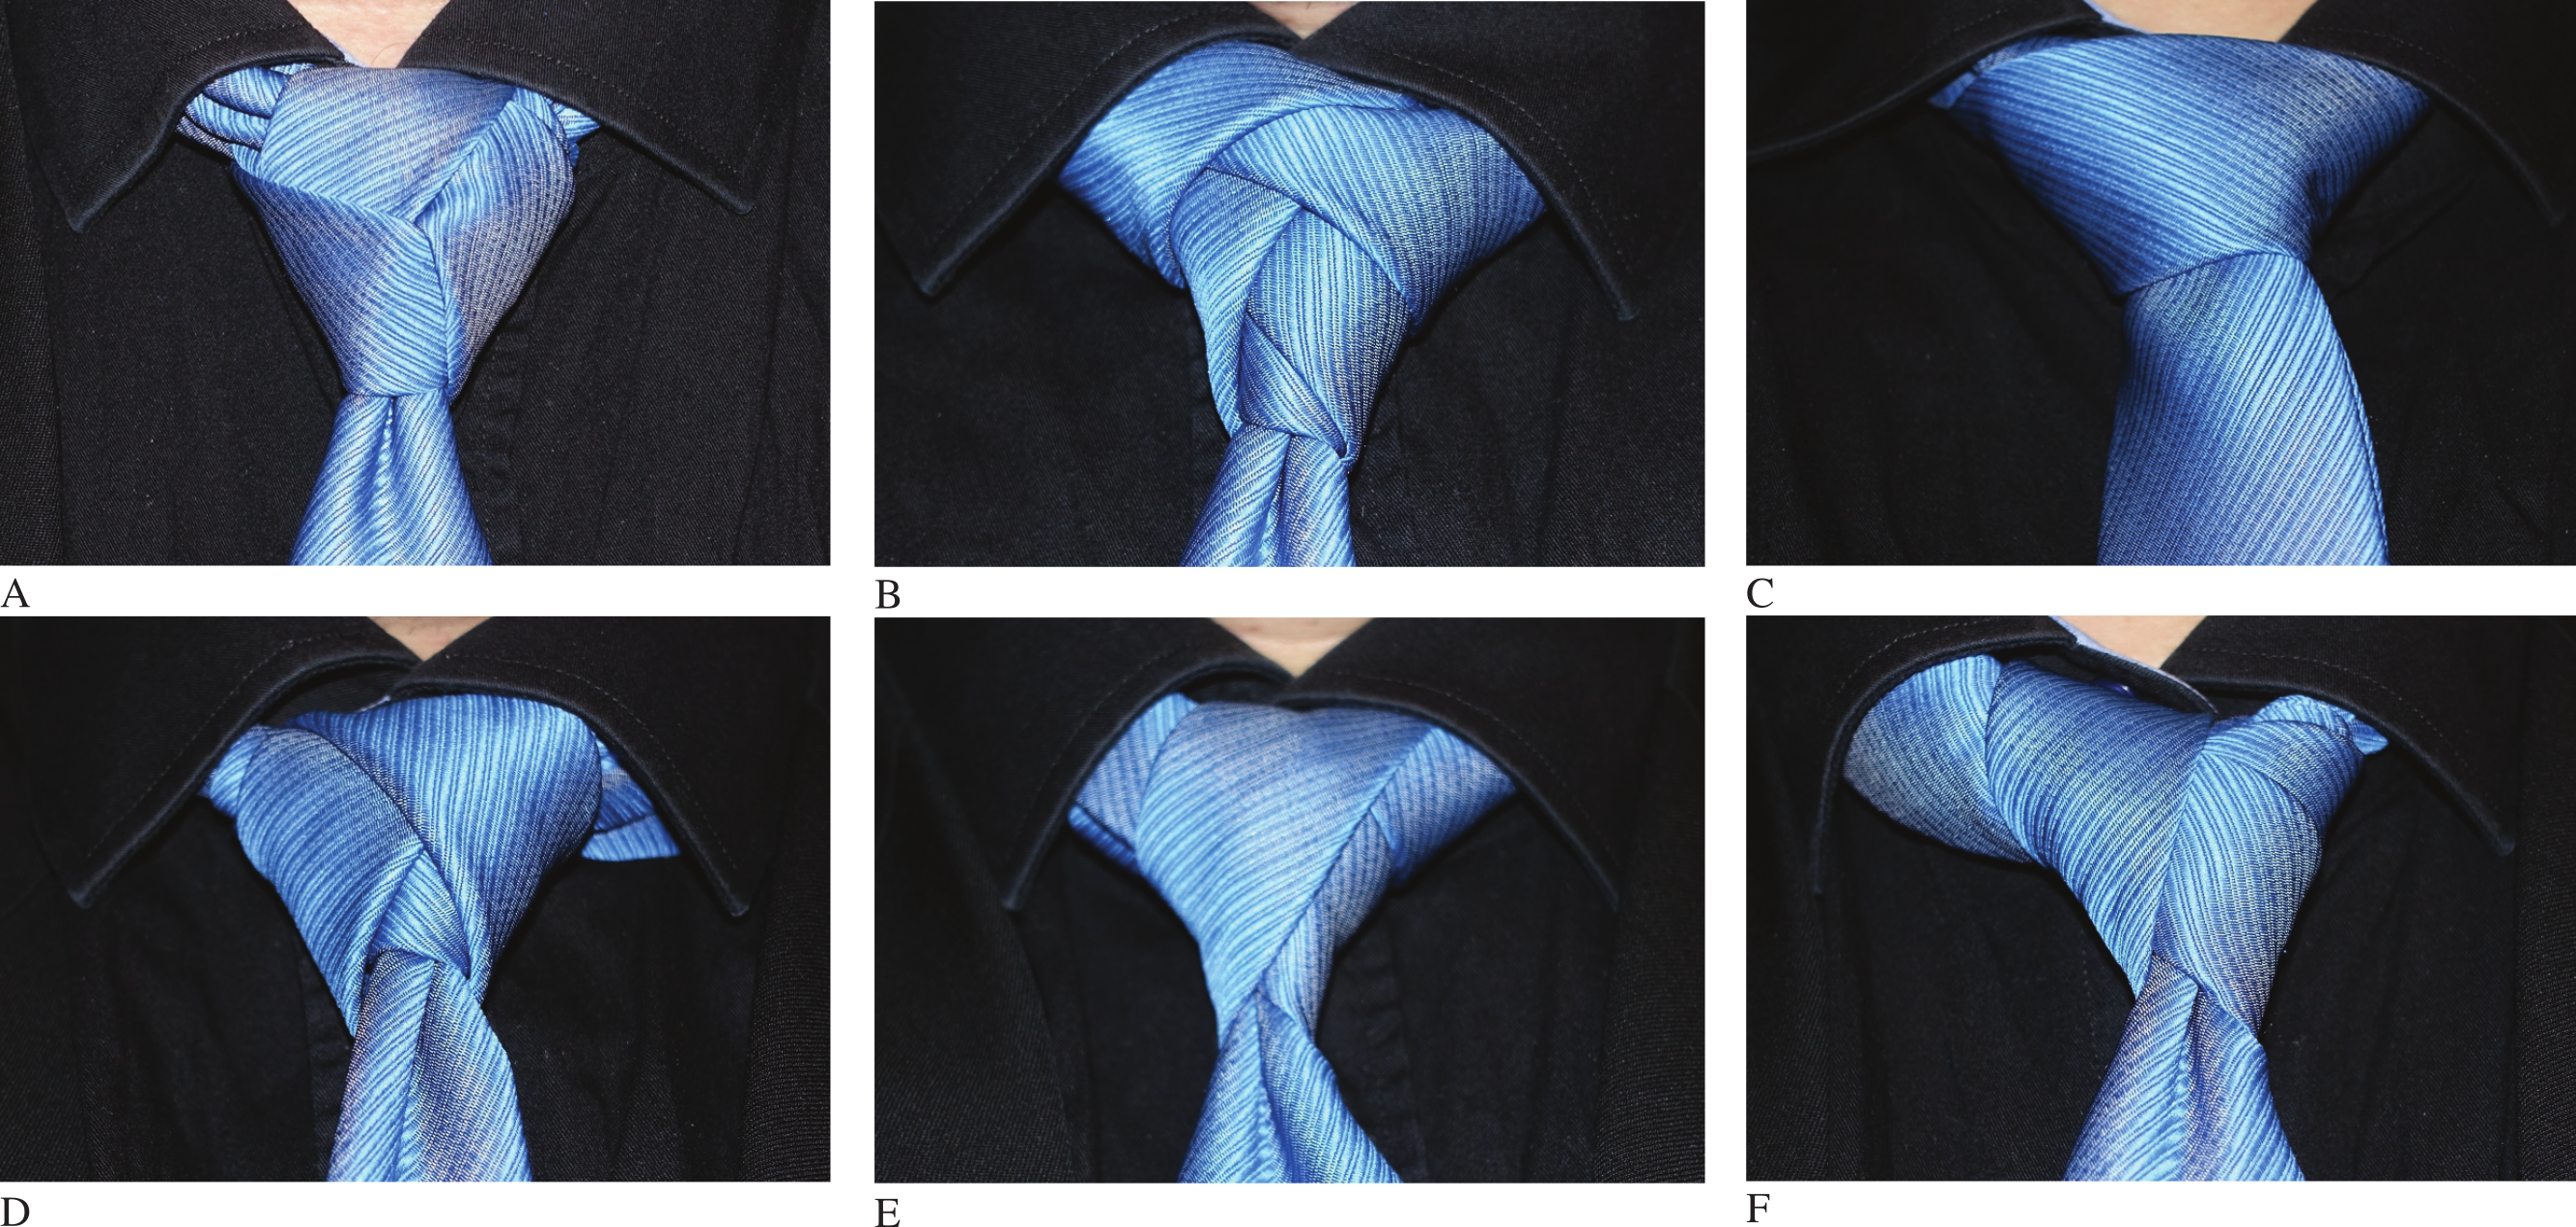 Horrific examples of (blue) tie knots against a black shirt.